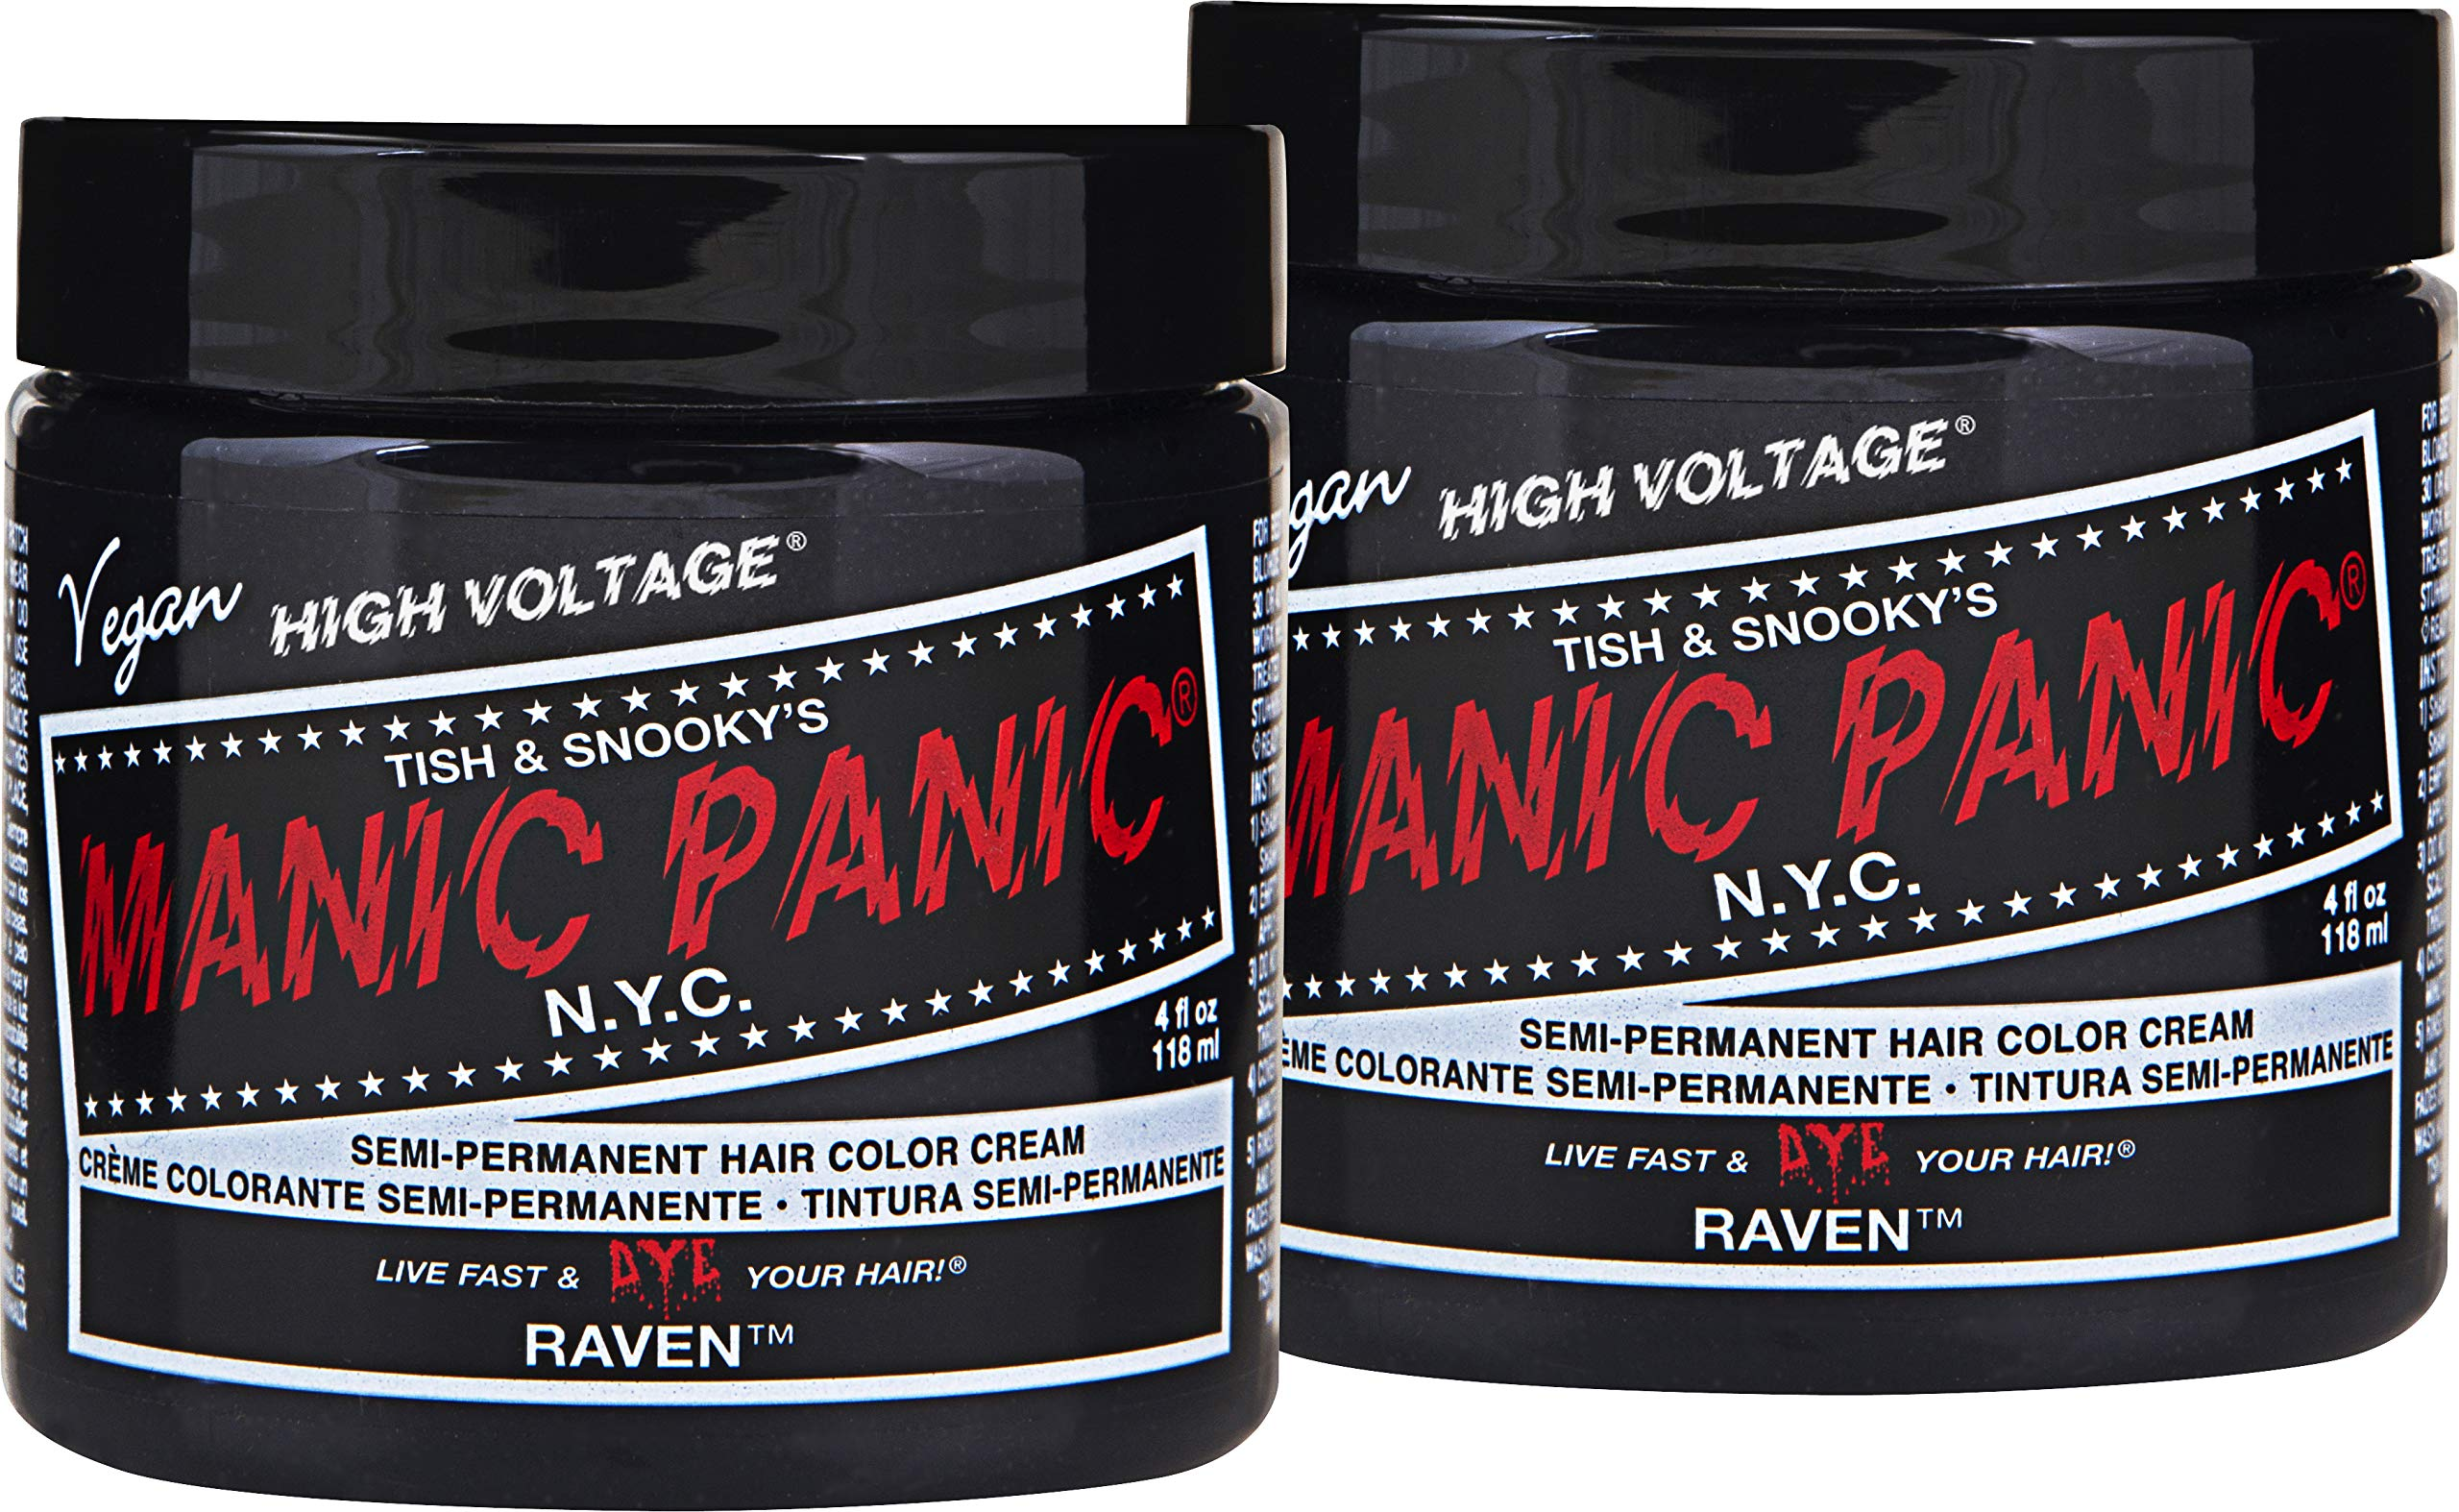 Manic Panic Raven Black Hair Color Cream (2-Pack) Classic High Voltage Semi-Permanent Hair Dye - Vivid, Black Shade - For Dark or Light Hair - Vegan, PPD & Ammonia-Free - Ready-to-Use, No-Mix Coloring by MANIC PANIC